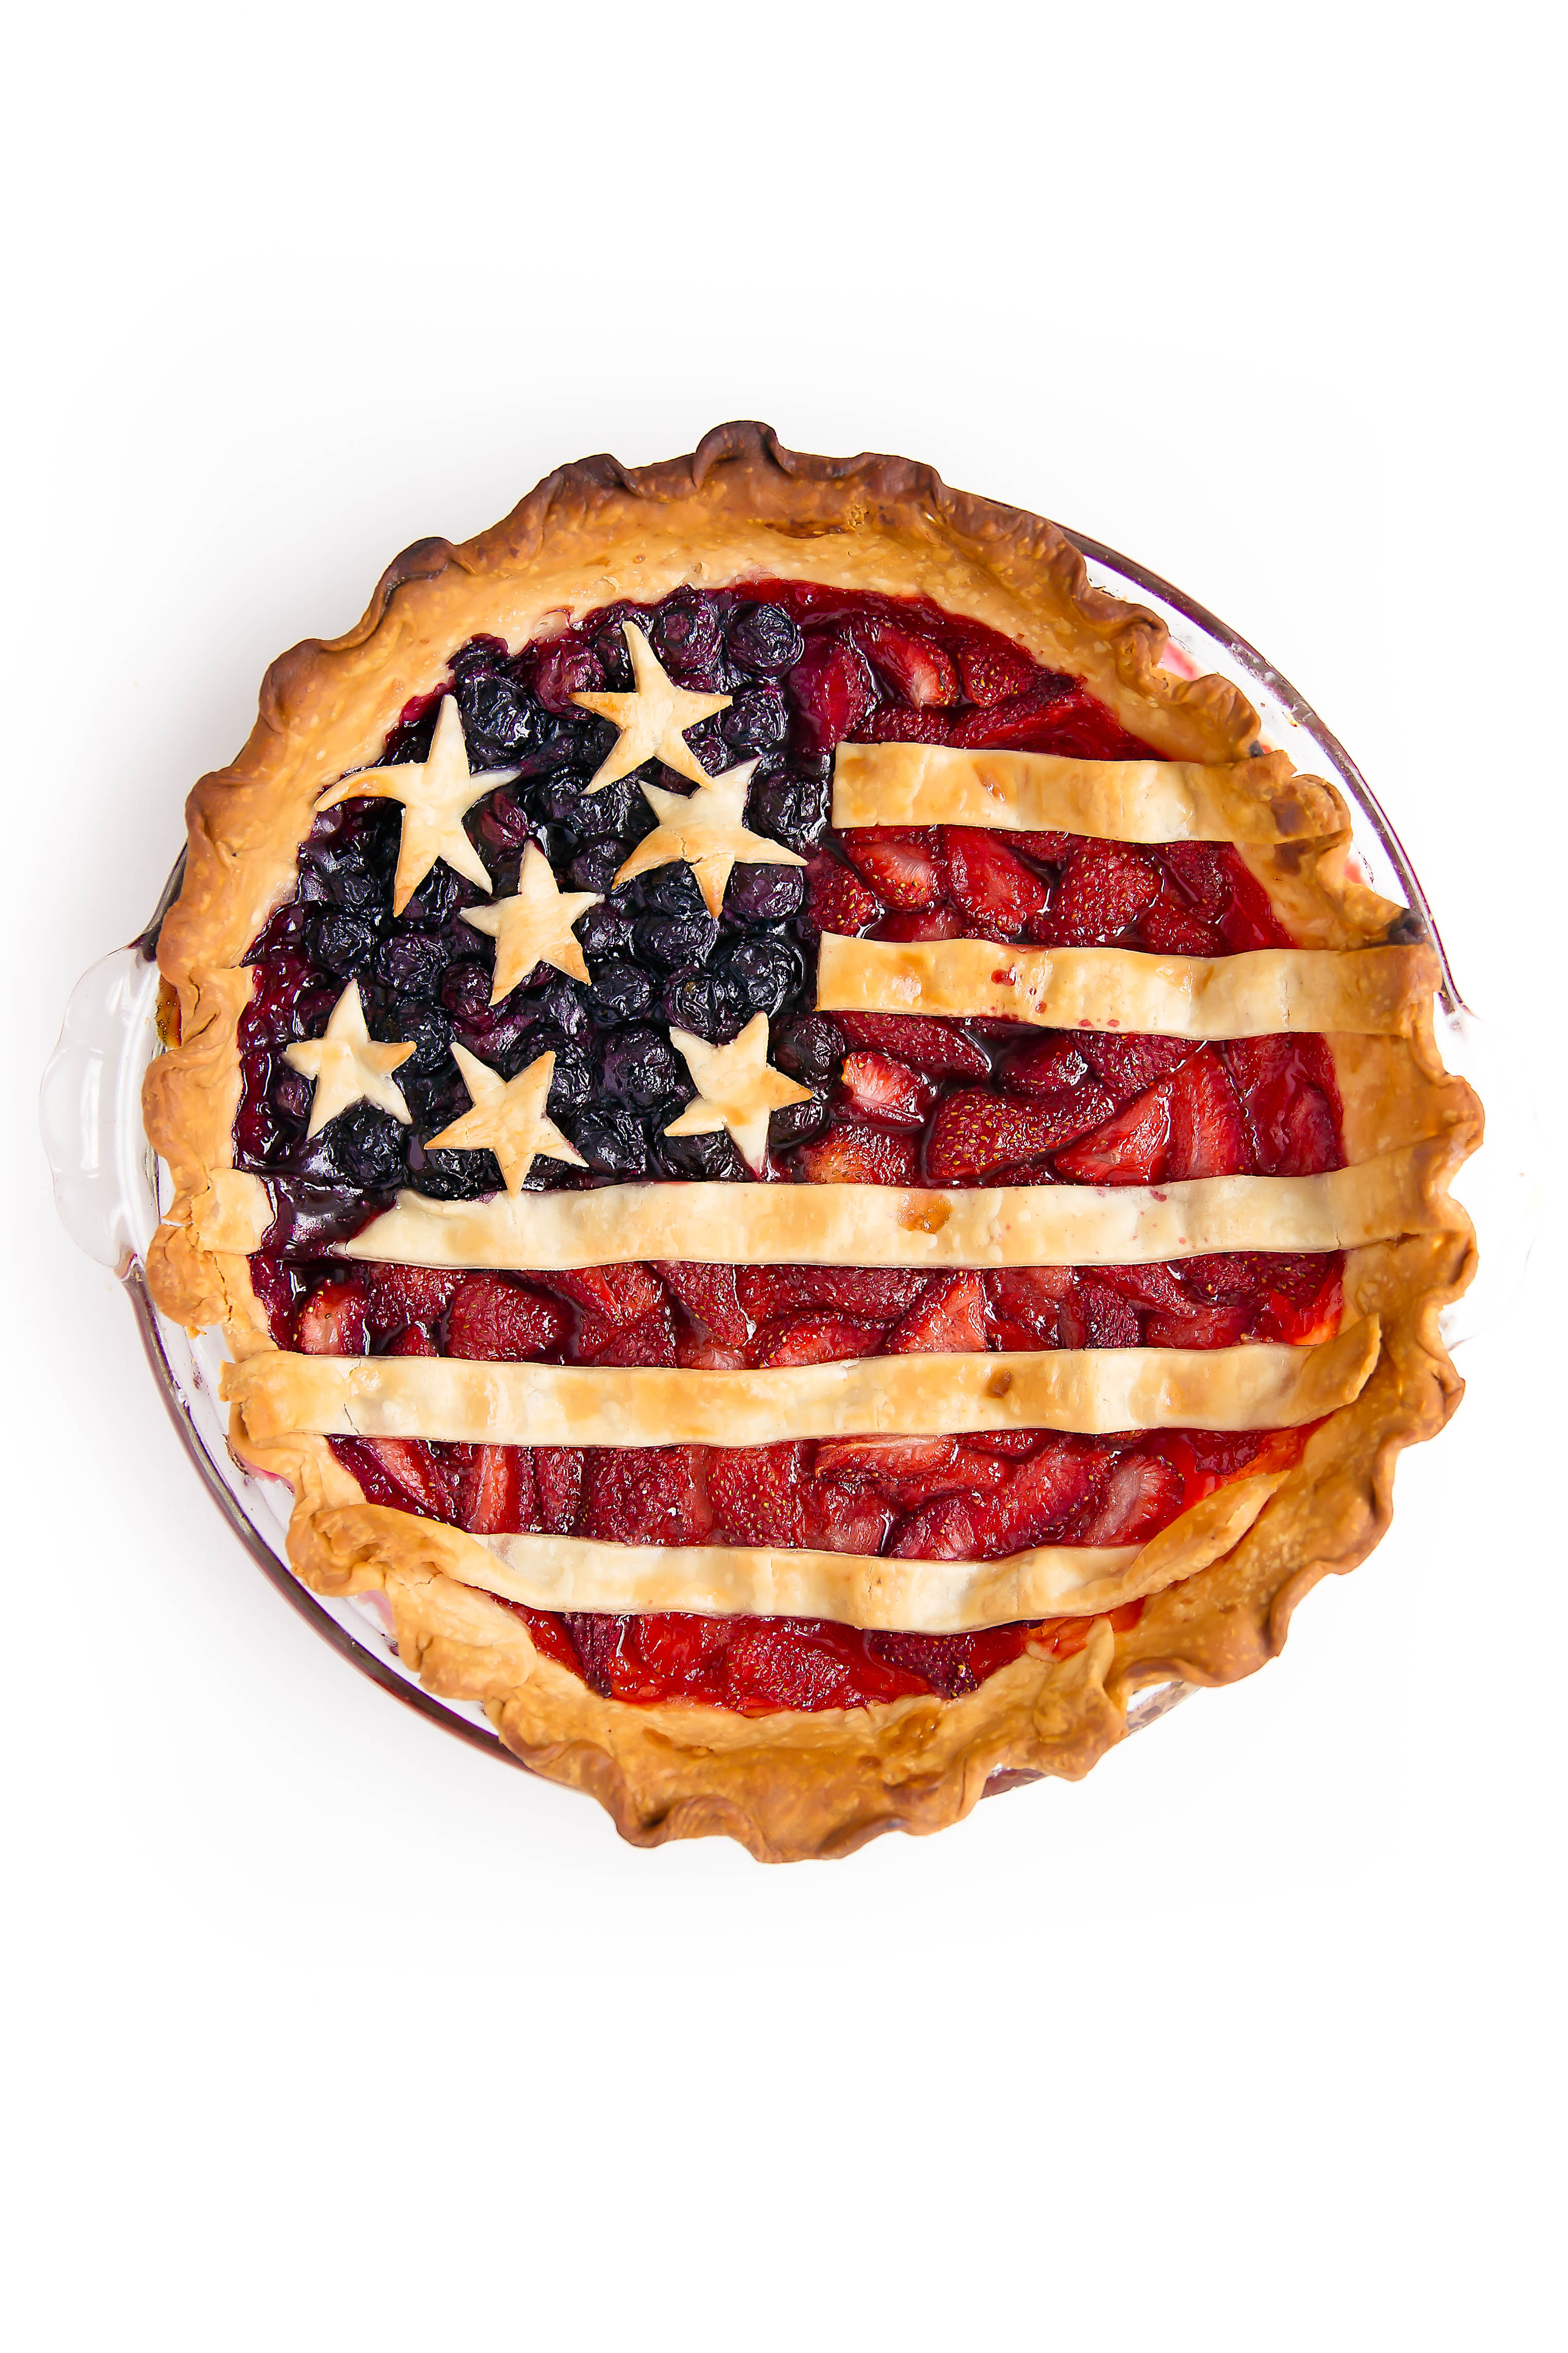 Celebrate Fourth Of July with this sweetheart: Miss American Pie, made with fresh berries and a crispy crust!